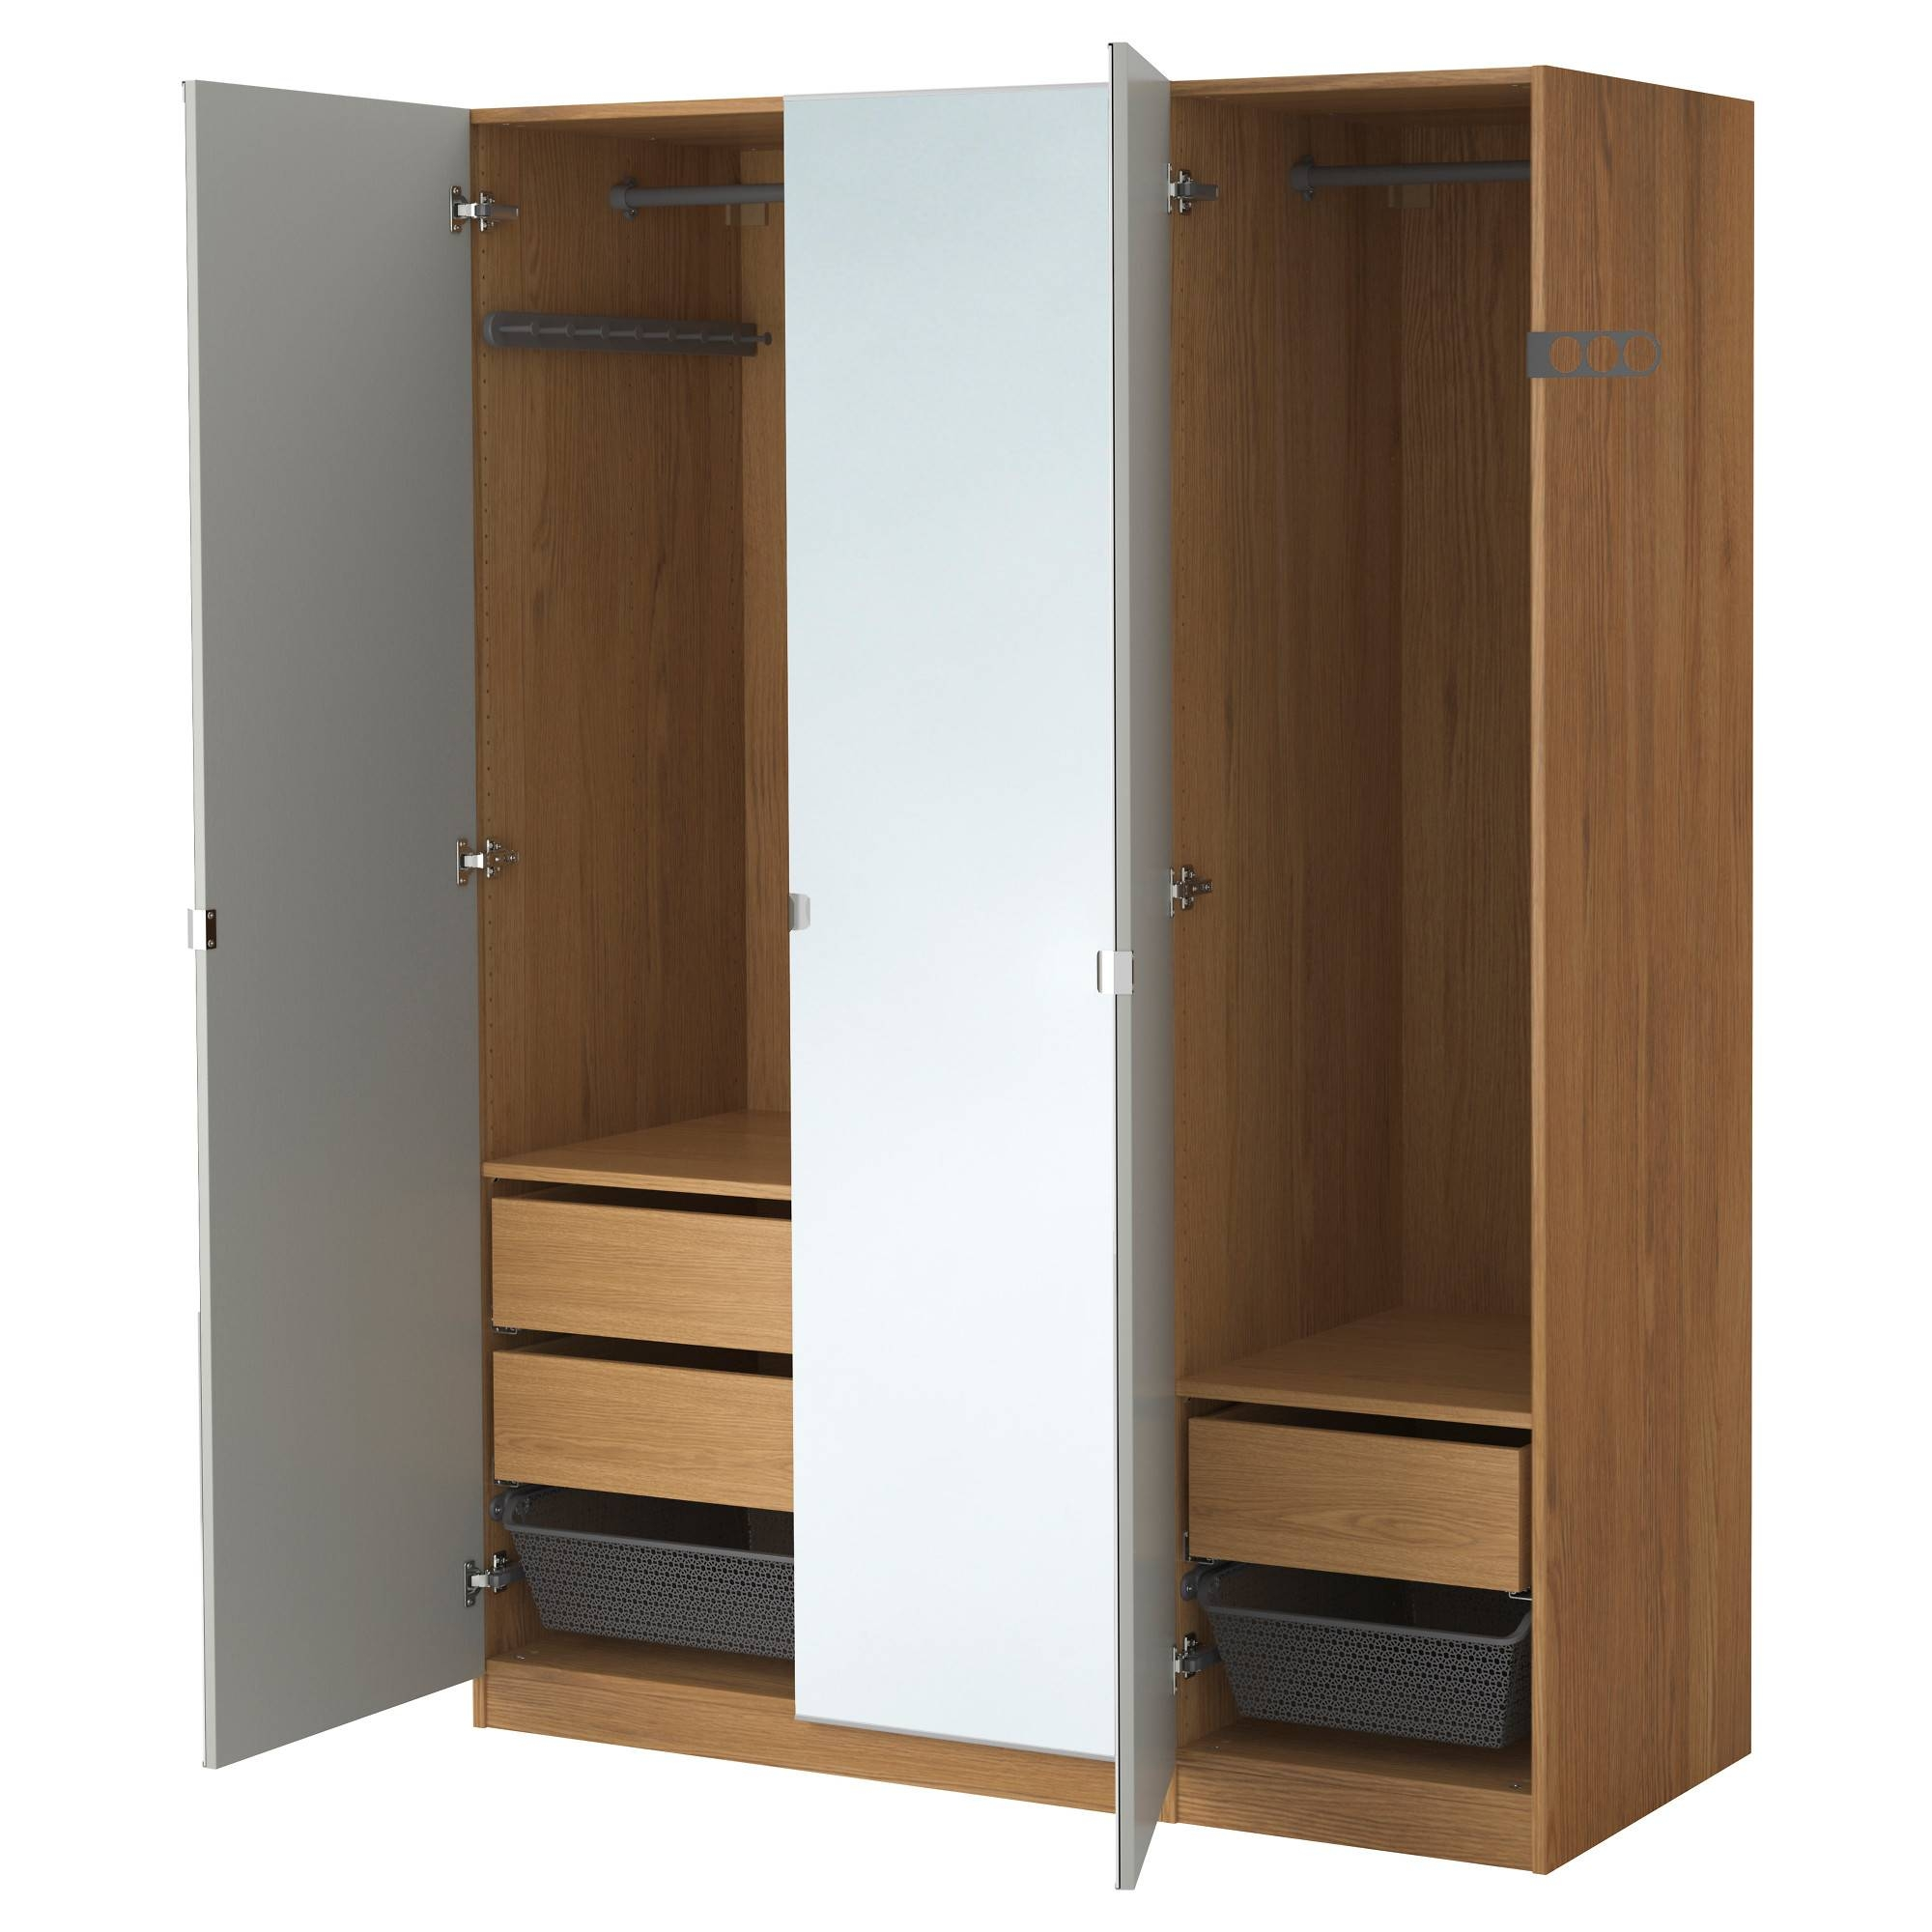 Wardrobes | Ikea regarding Mirrored Wardrobes With Drawers (Image 14 of 15)